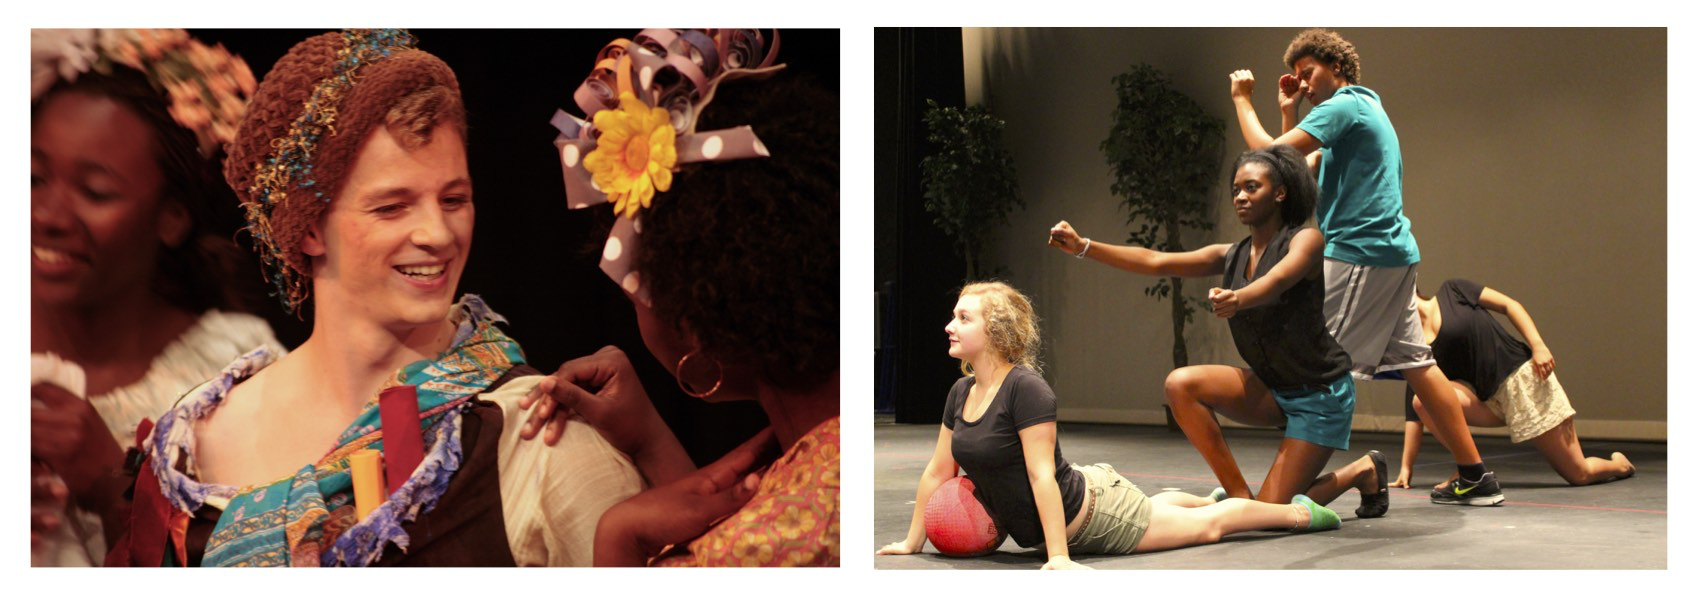 BAYFEST youth theatre summer acting drama camp